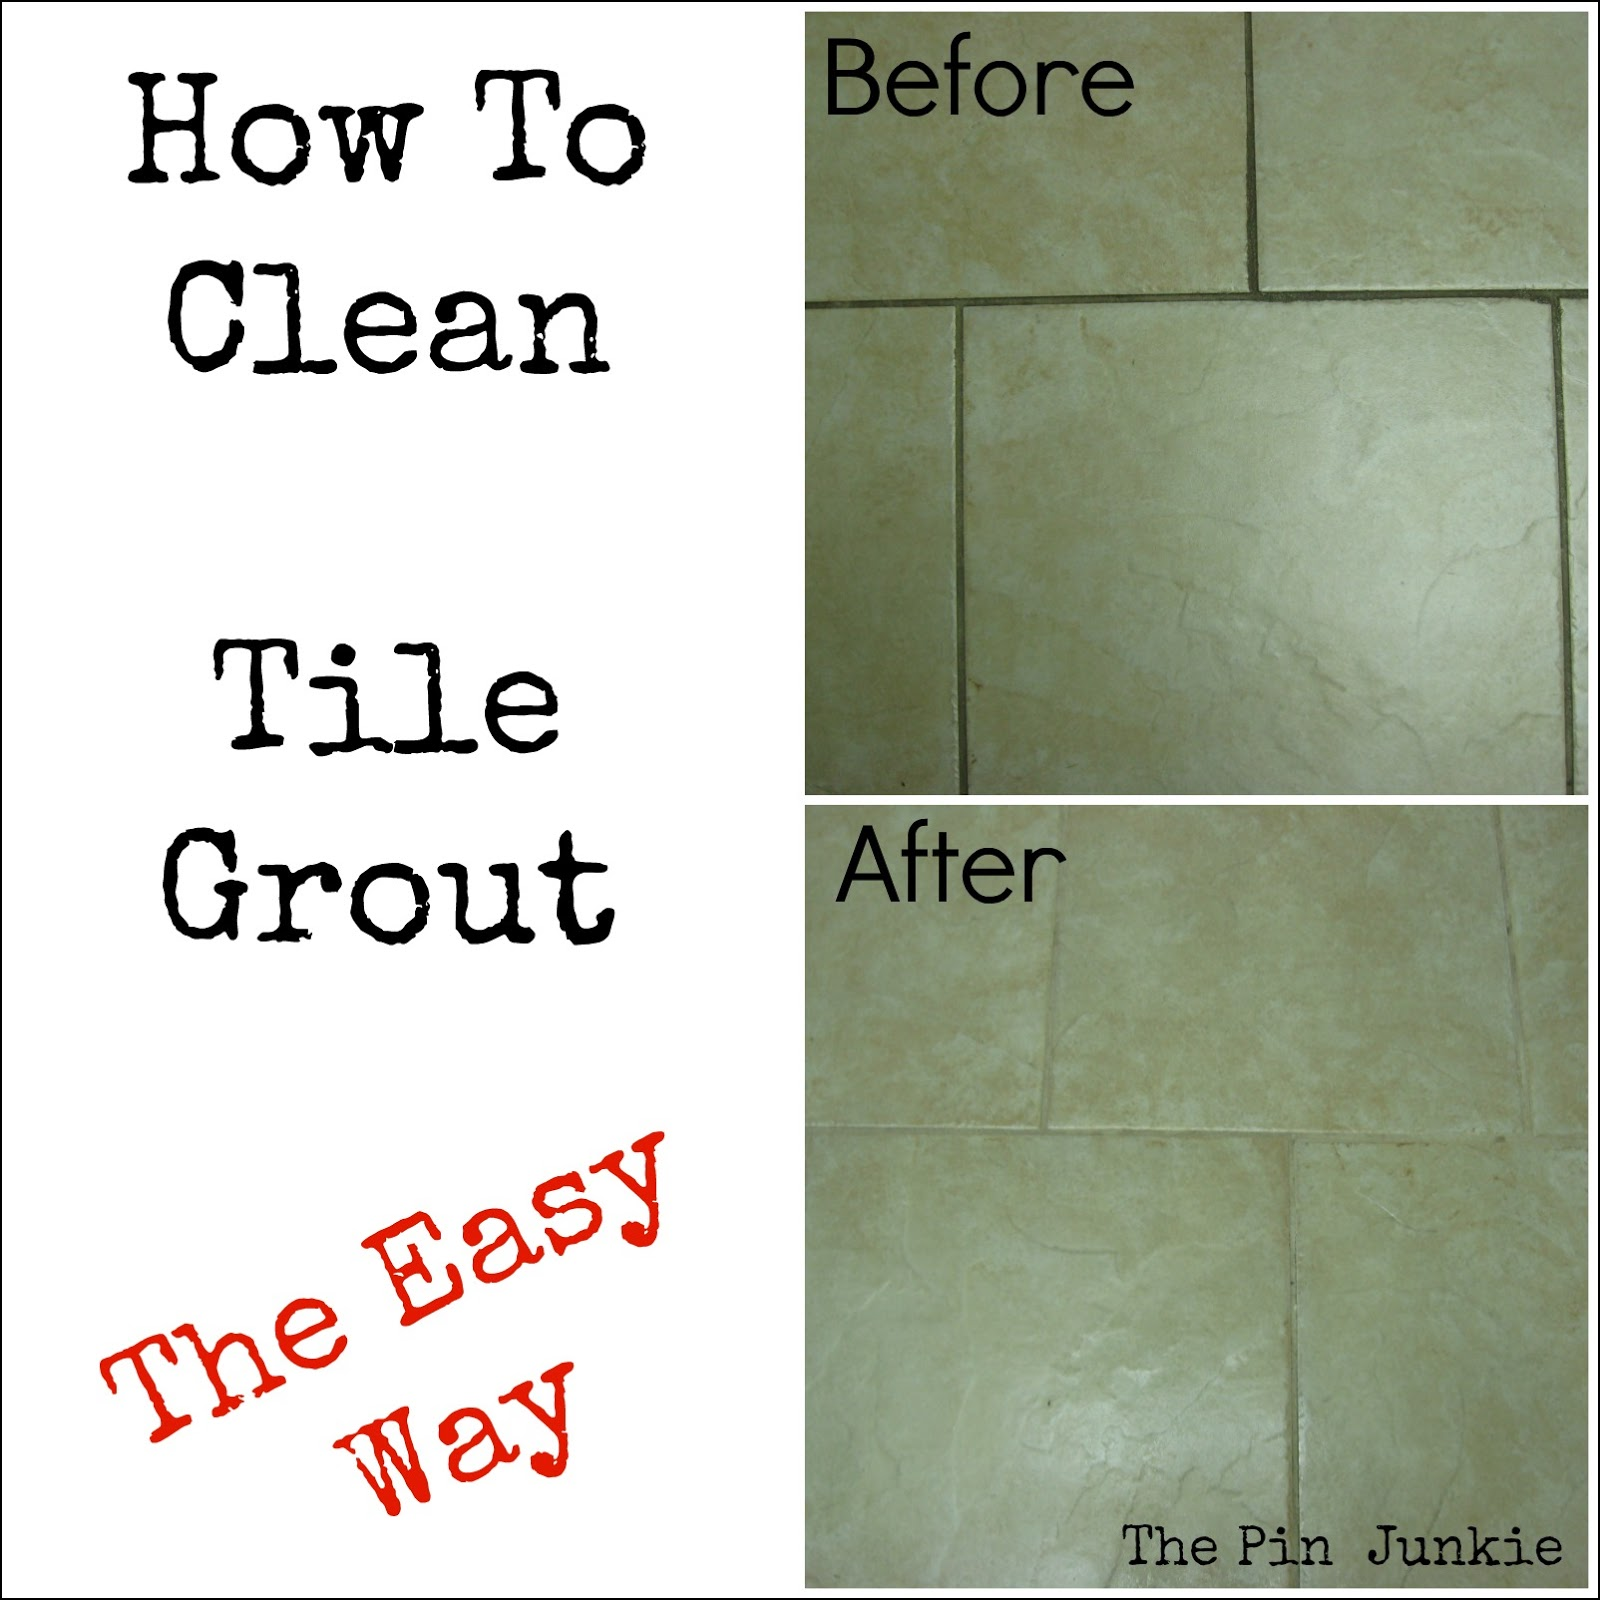 How to clean tile grout how to clean tile grout dailygadgetfo Image collections